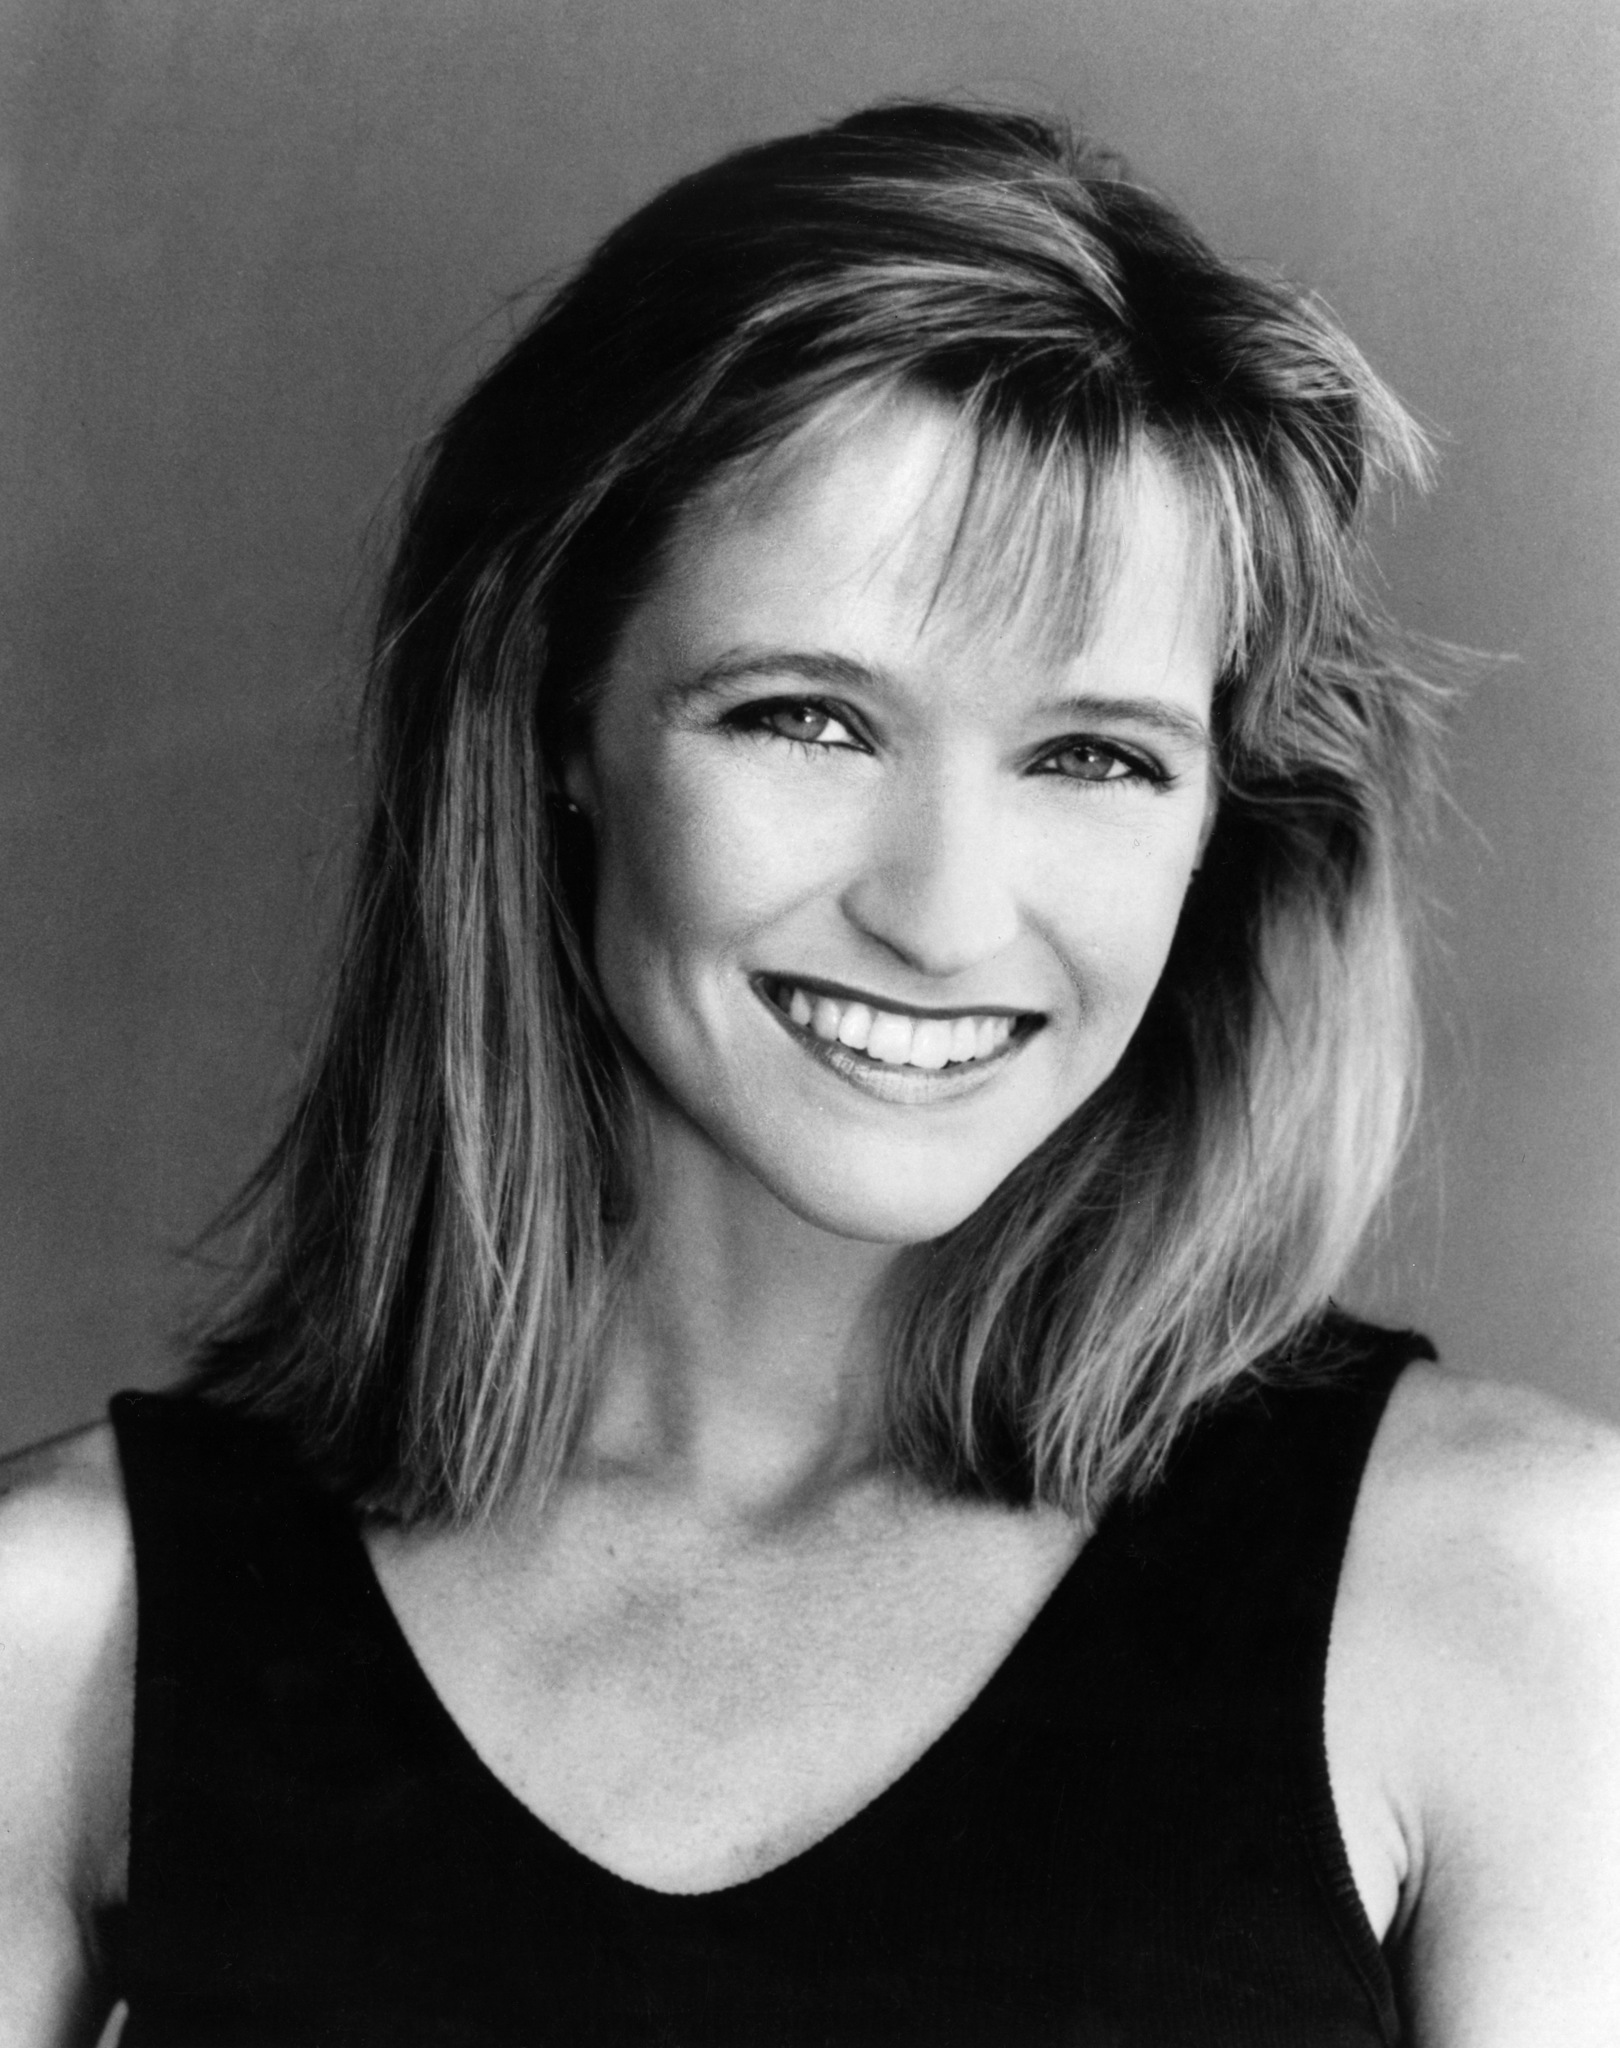 Jan Hooks born April 23, 1957